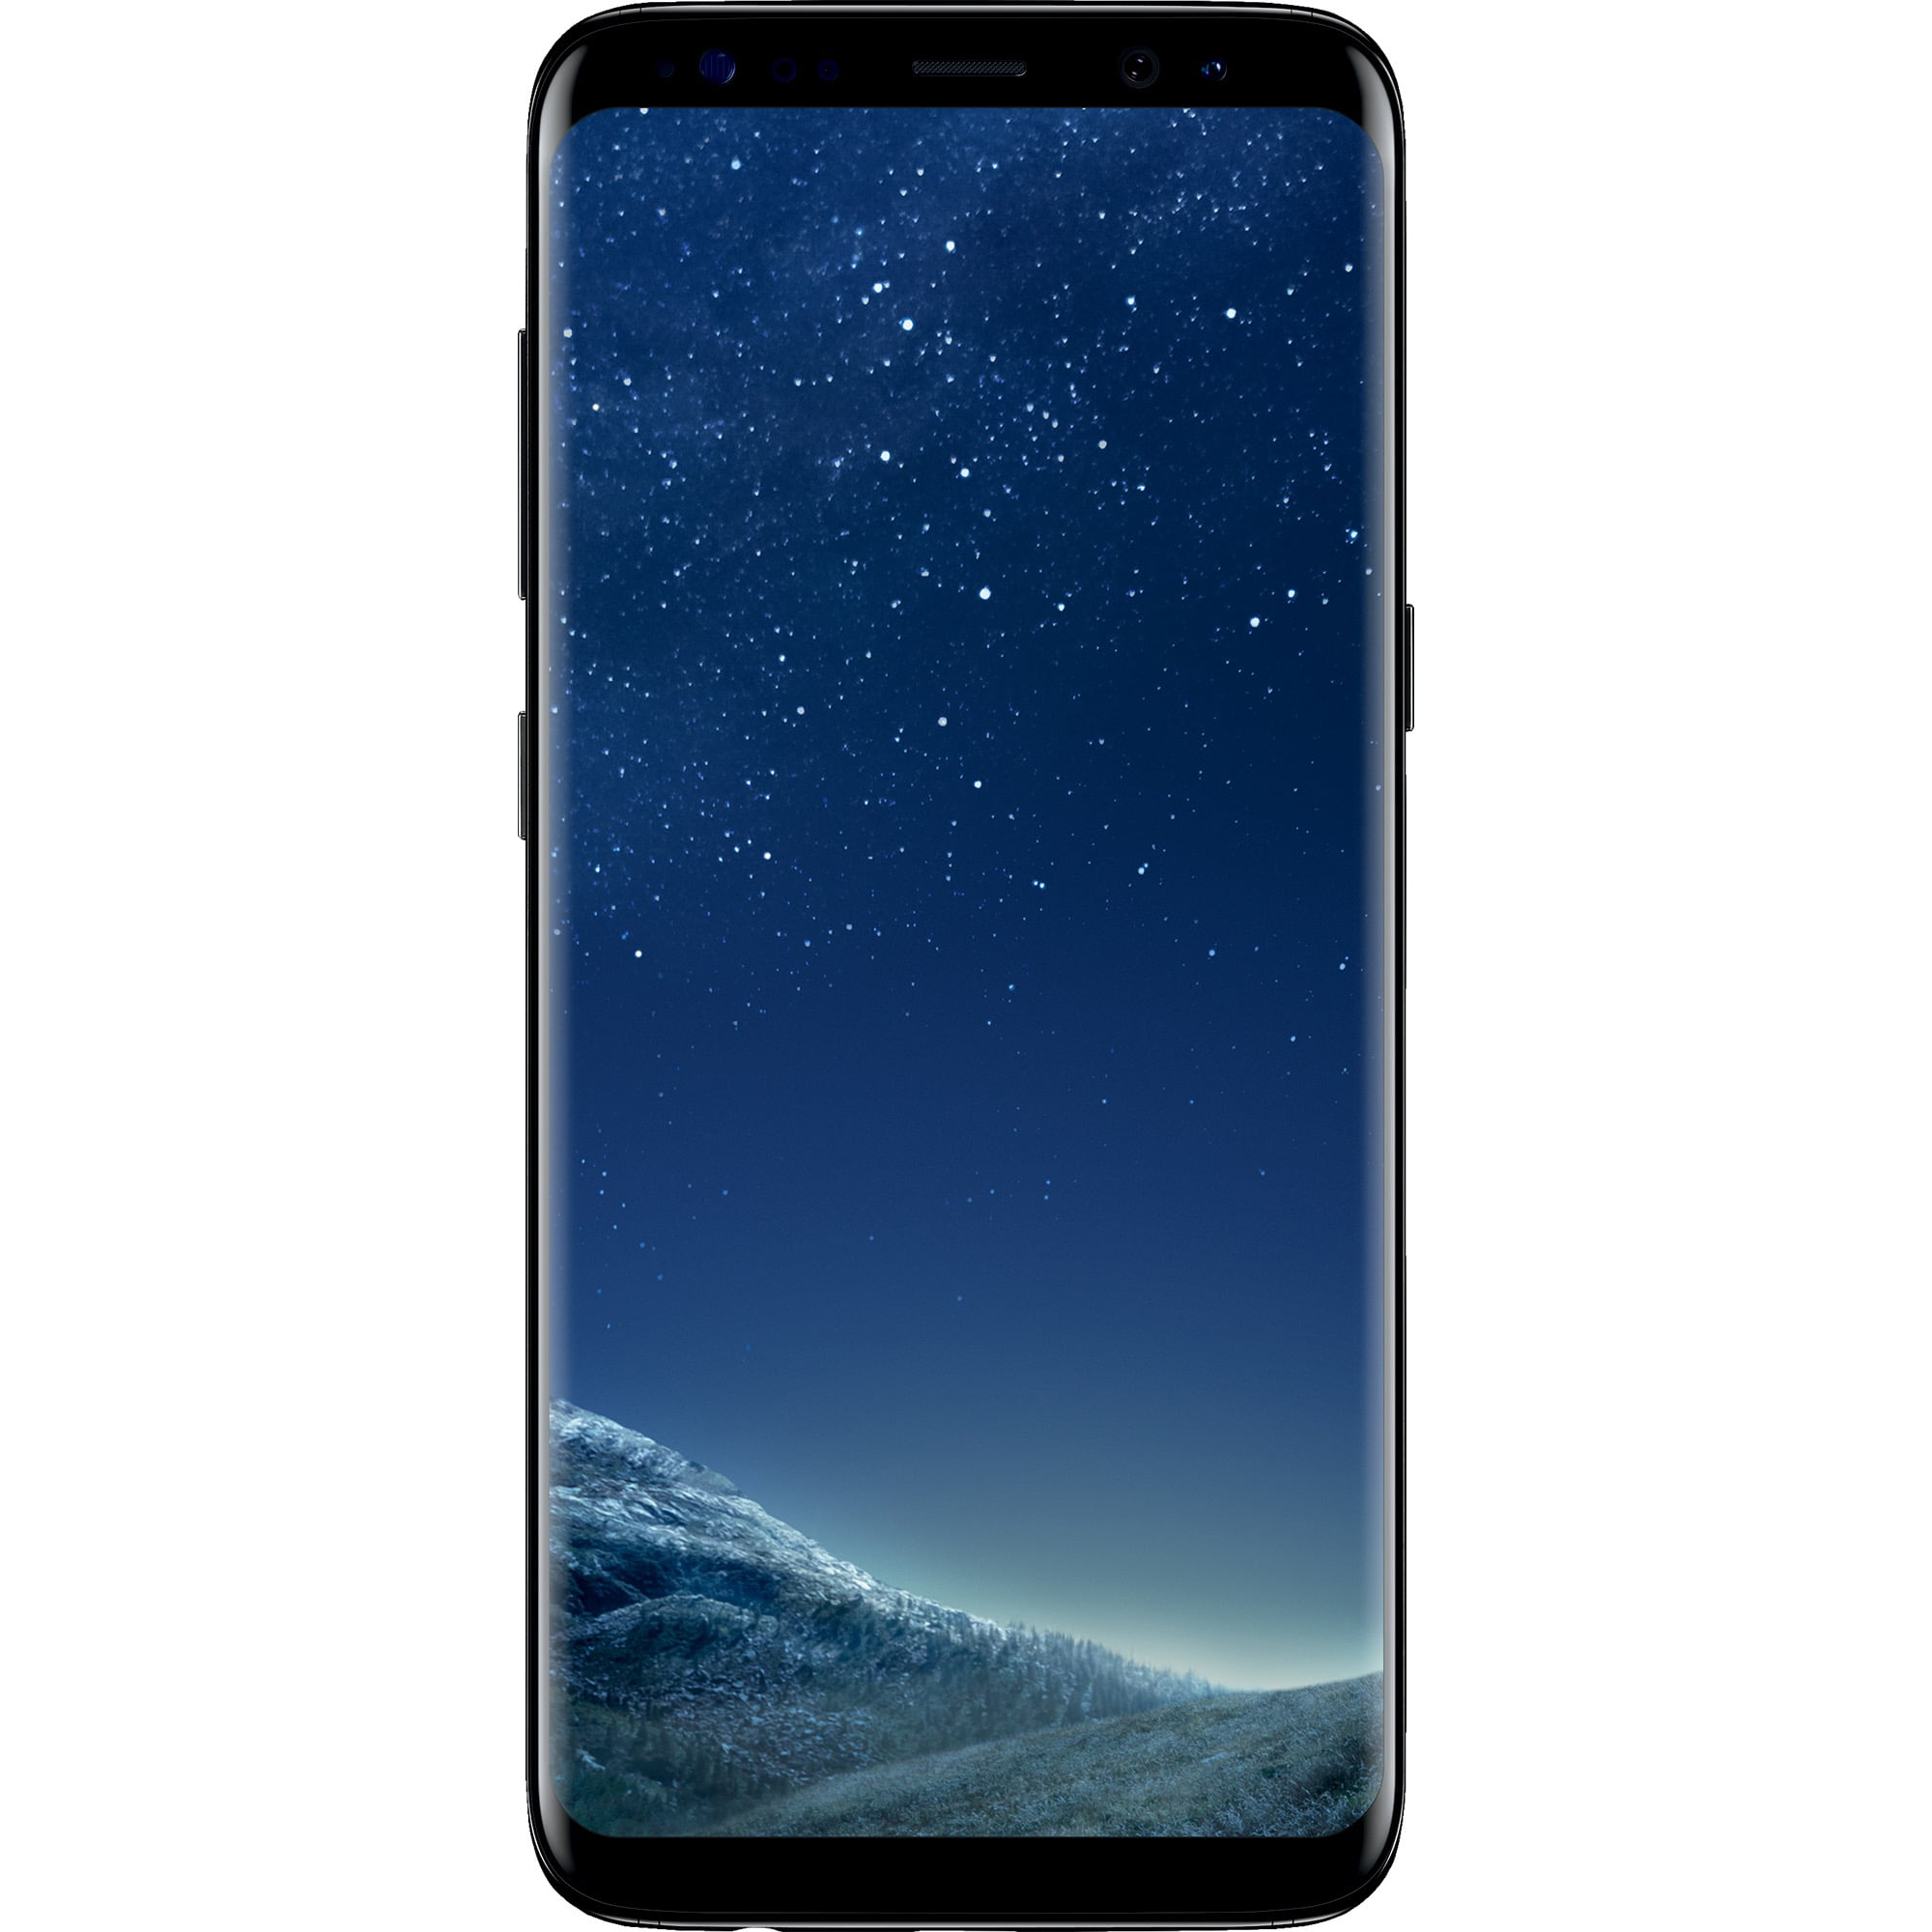 Simple Mobile Samsung Galaxy S8 LTE Prepaid Smartphone, Black by Samsung